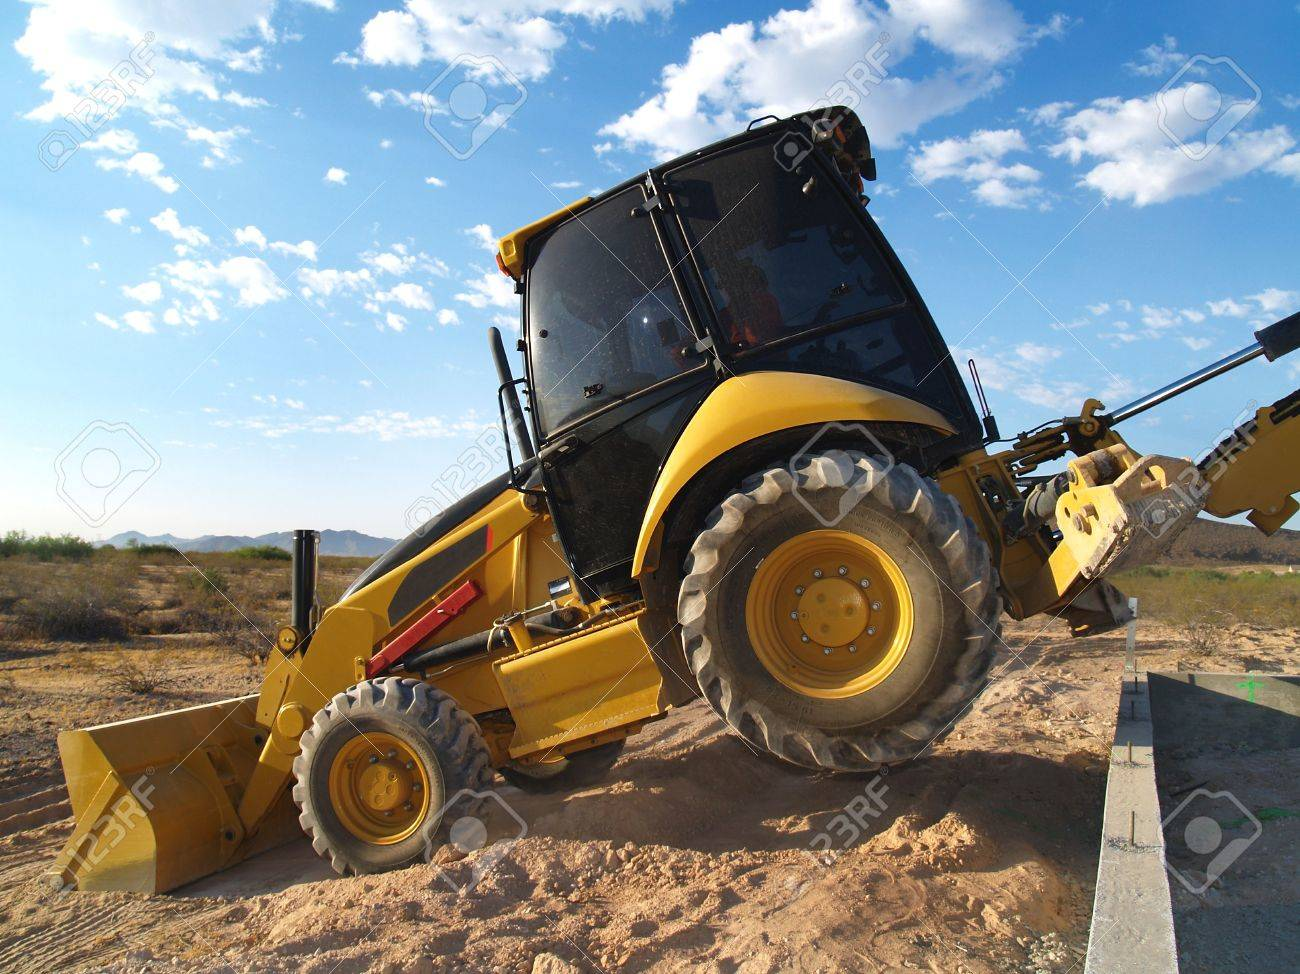 A large machine shovel is scooping dirt on an excavation site.  Horizontally framed shot. Stock Photo - 3338983